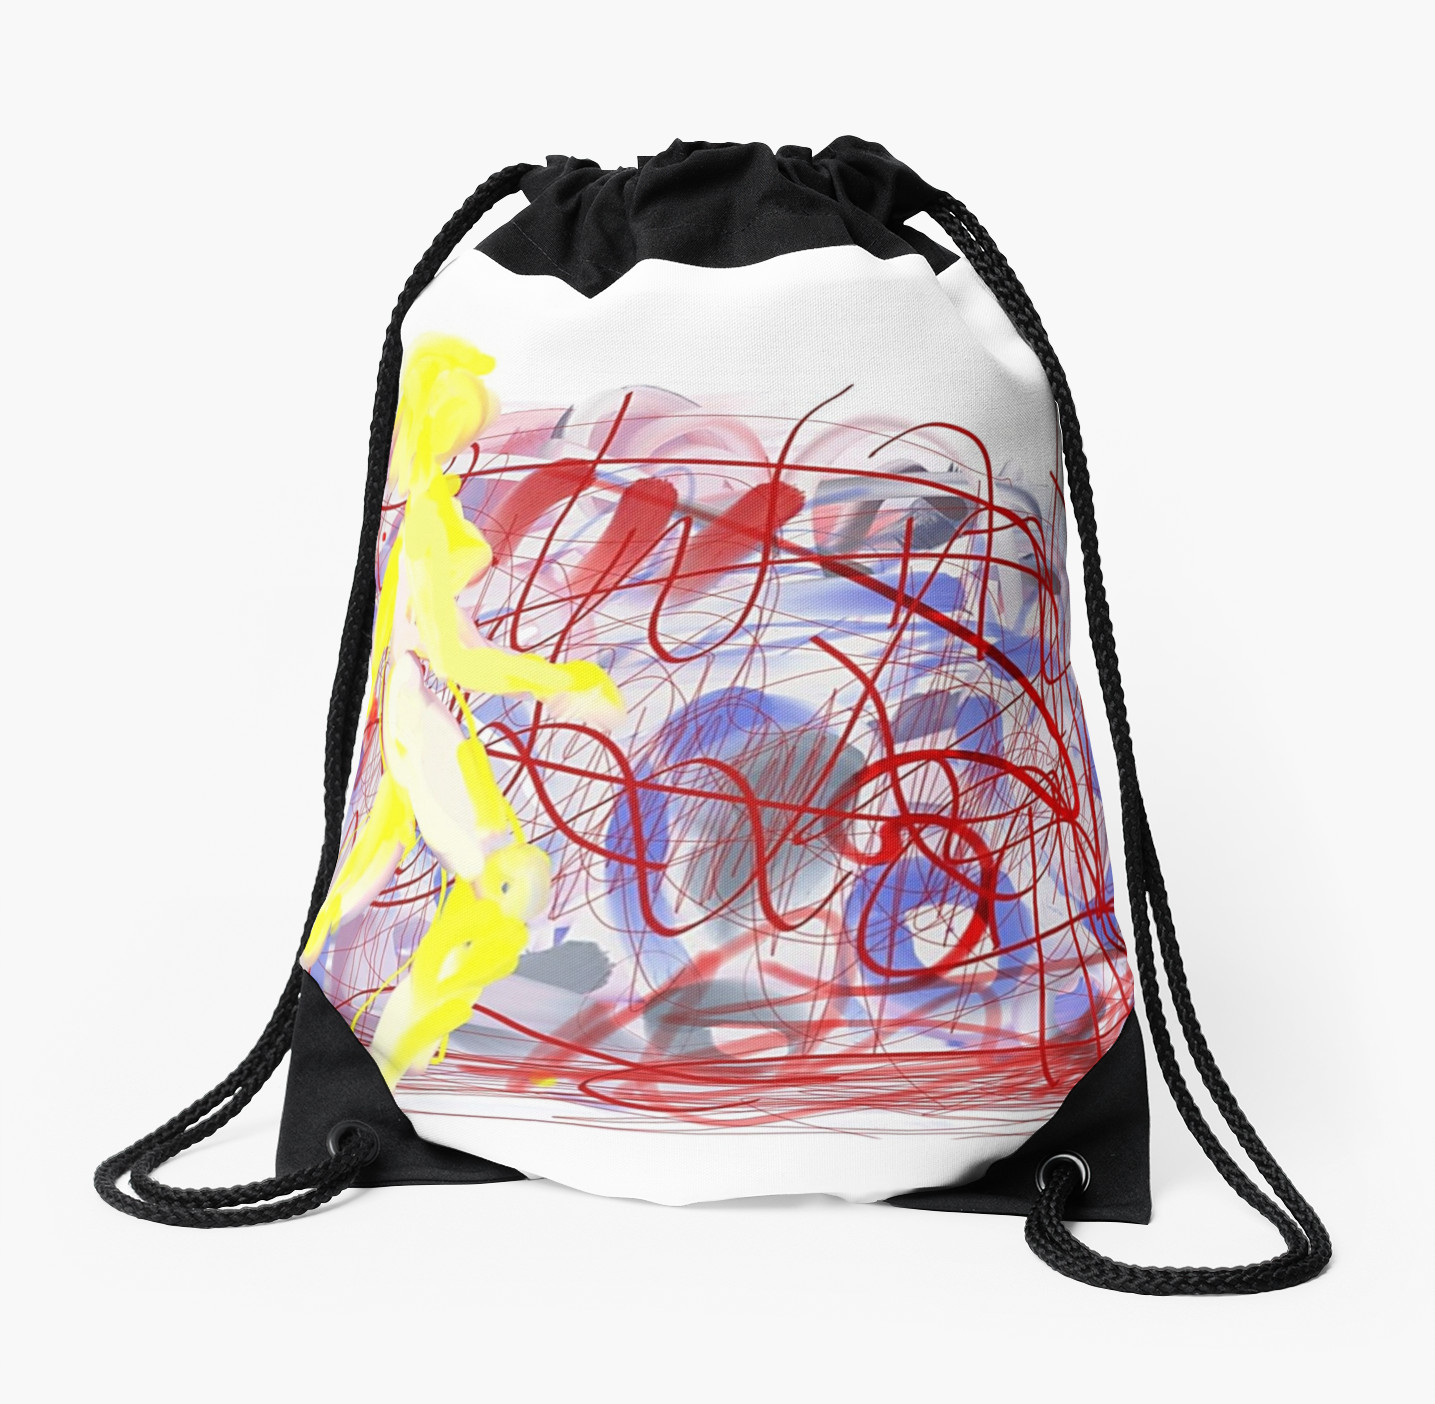 Graffiti Bridge drawstring bag